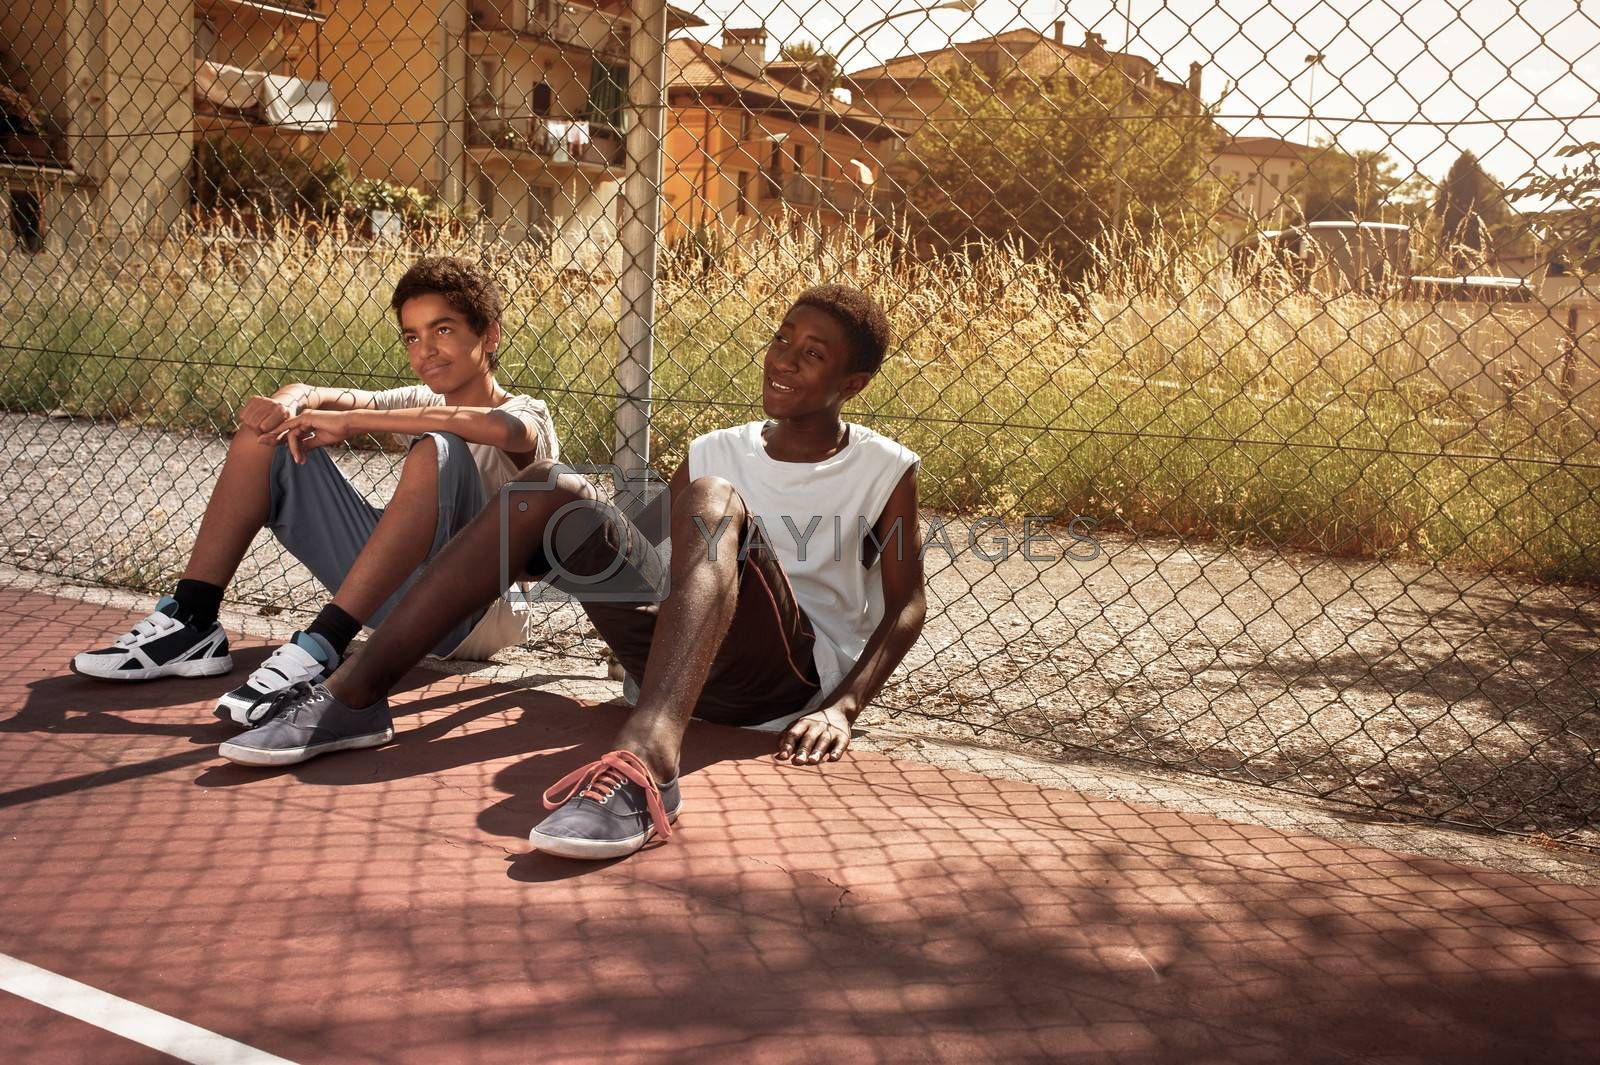 Two young African boy resting outdoors